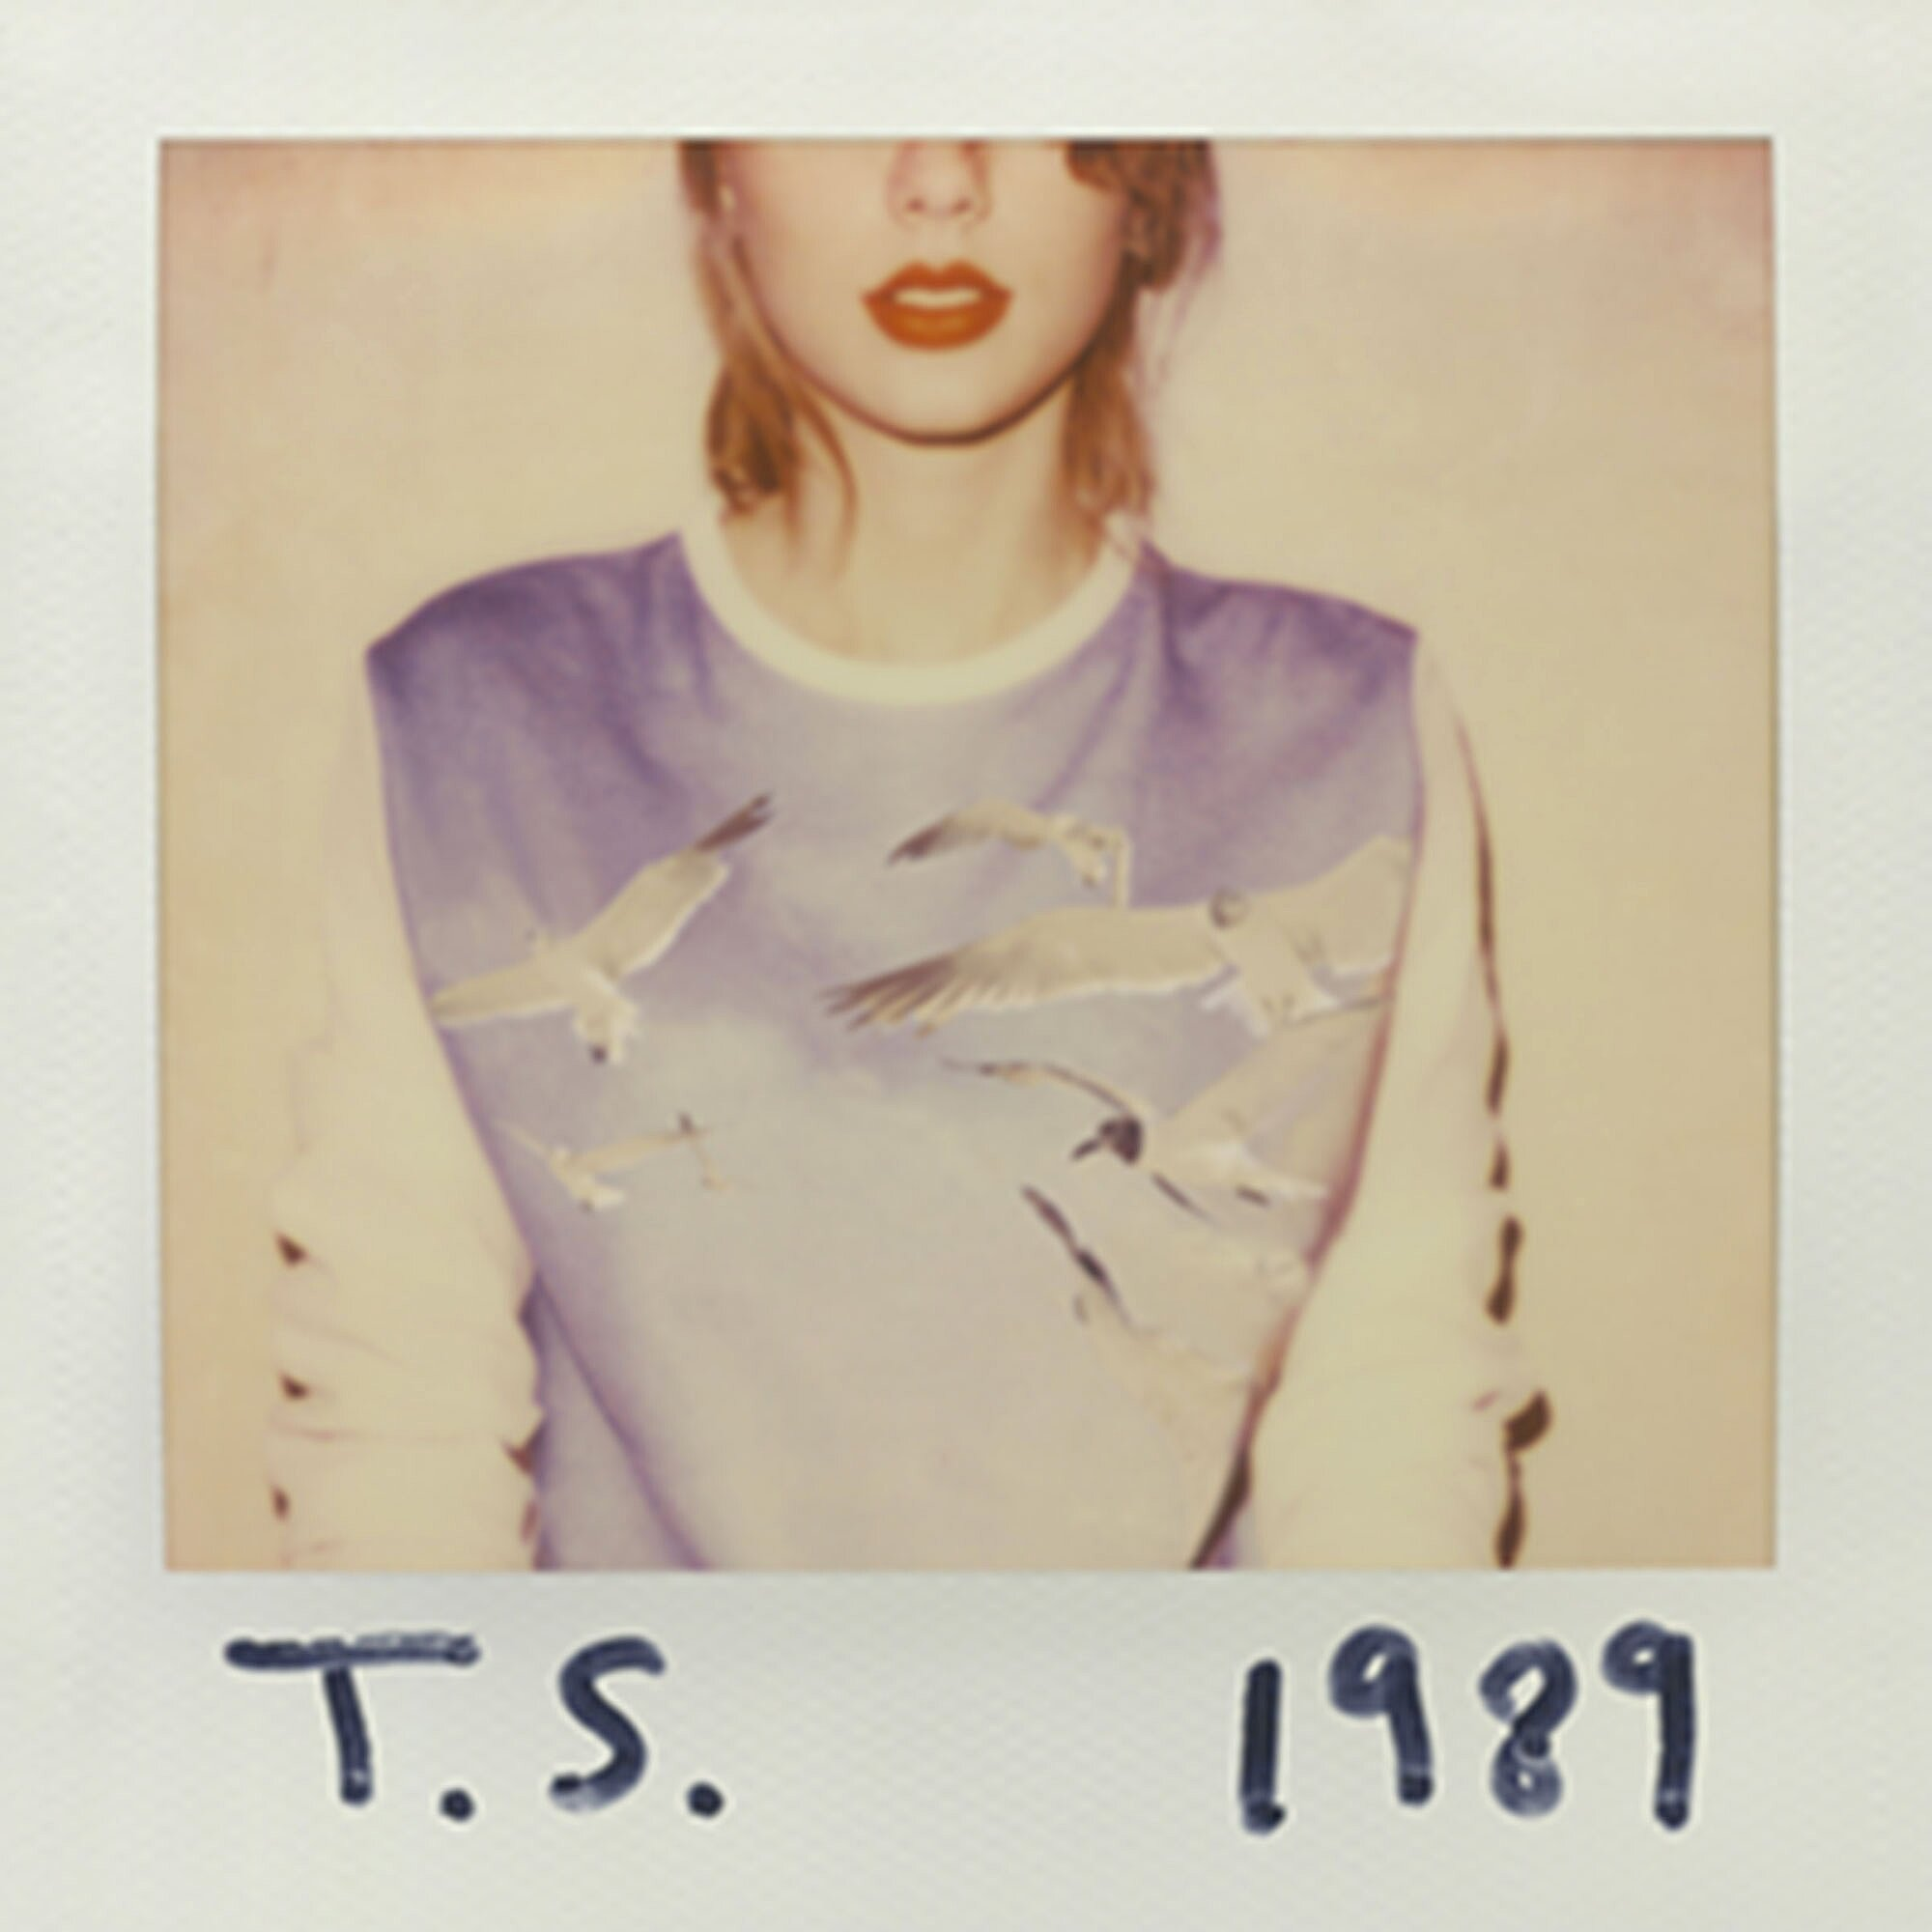 Taylor Swift S Album Covers Through The Years People Com